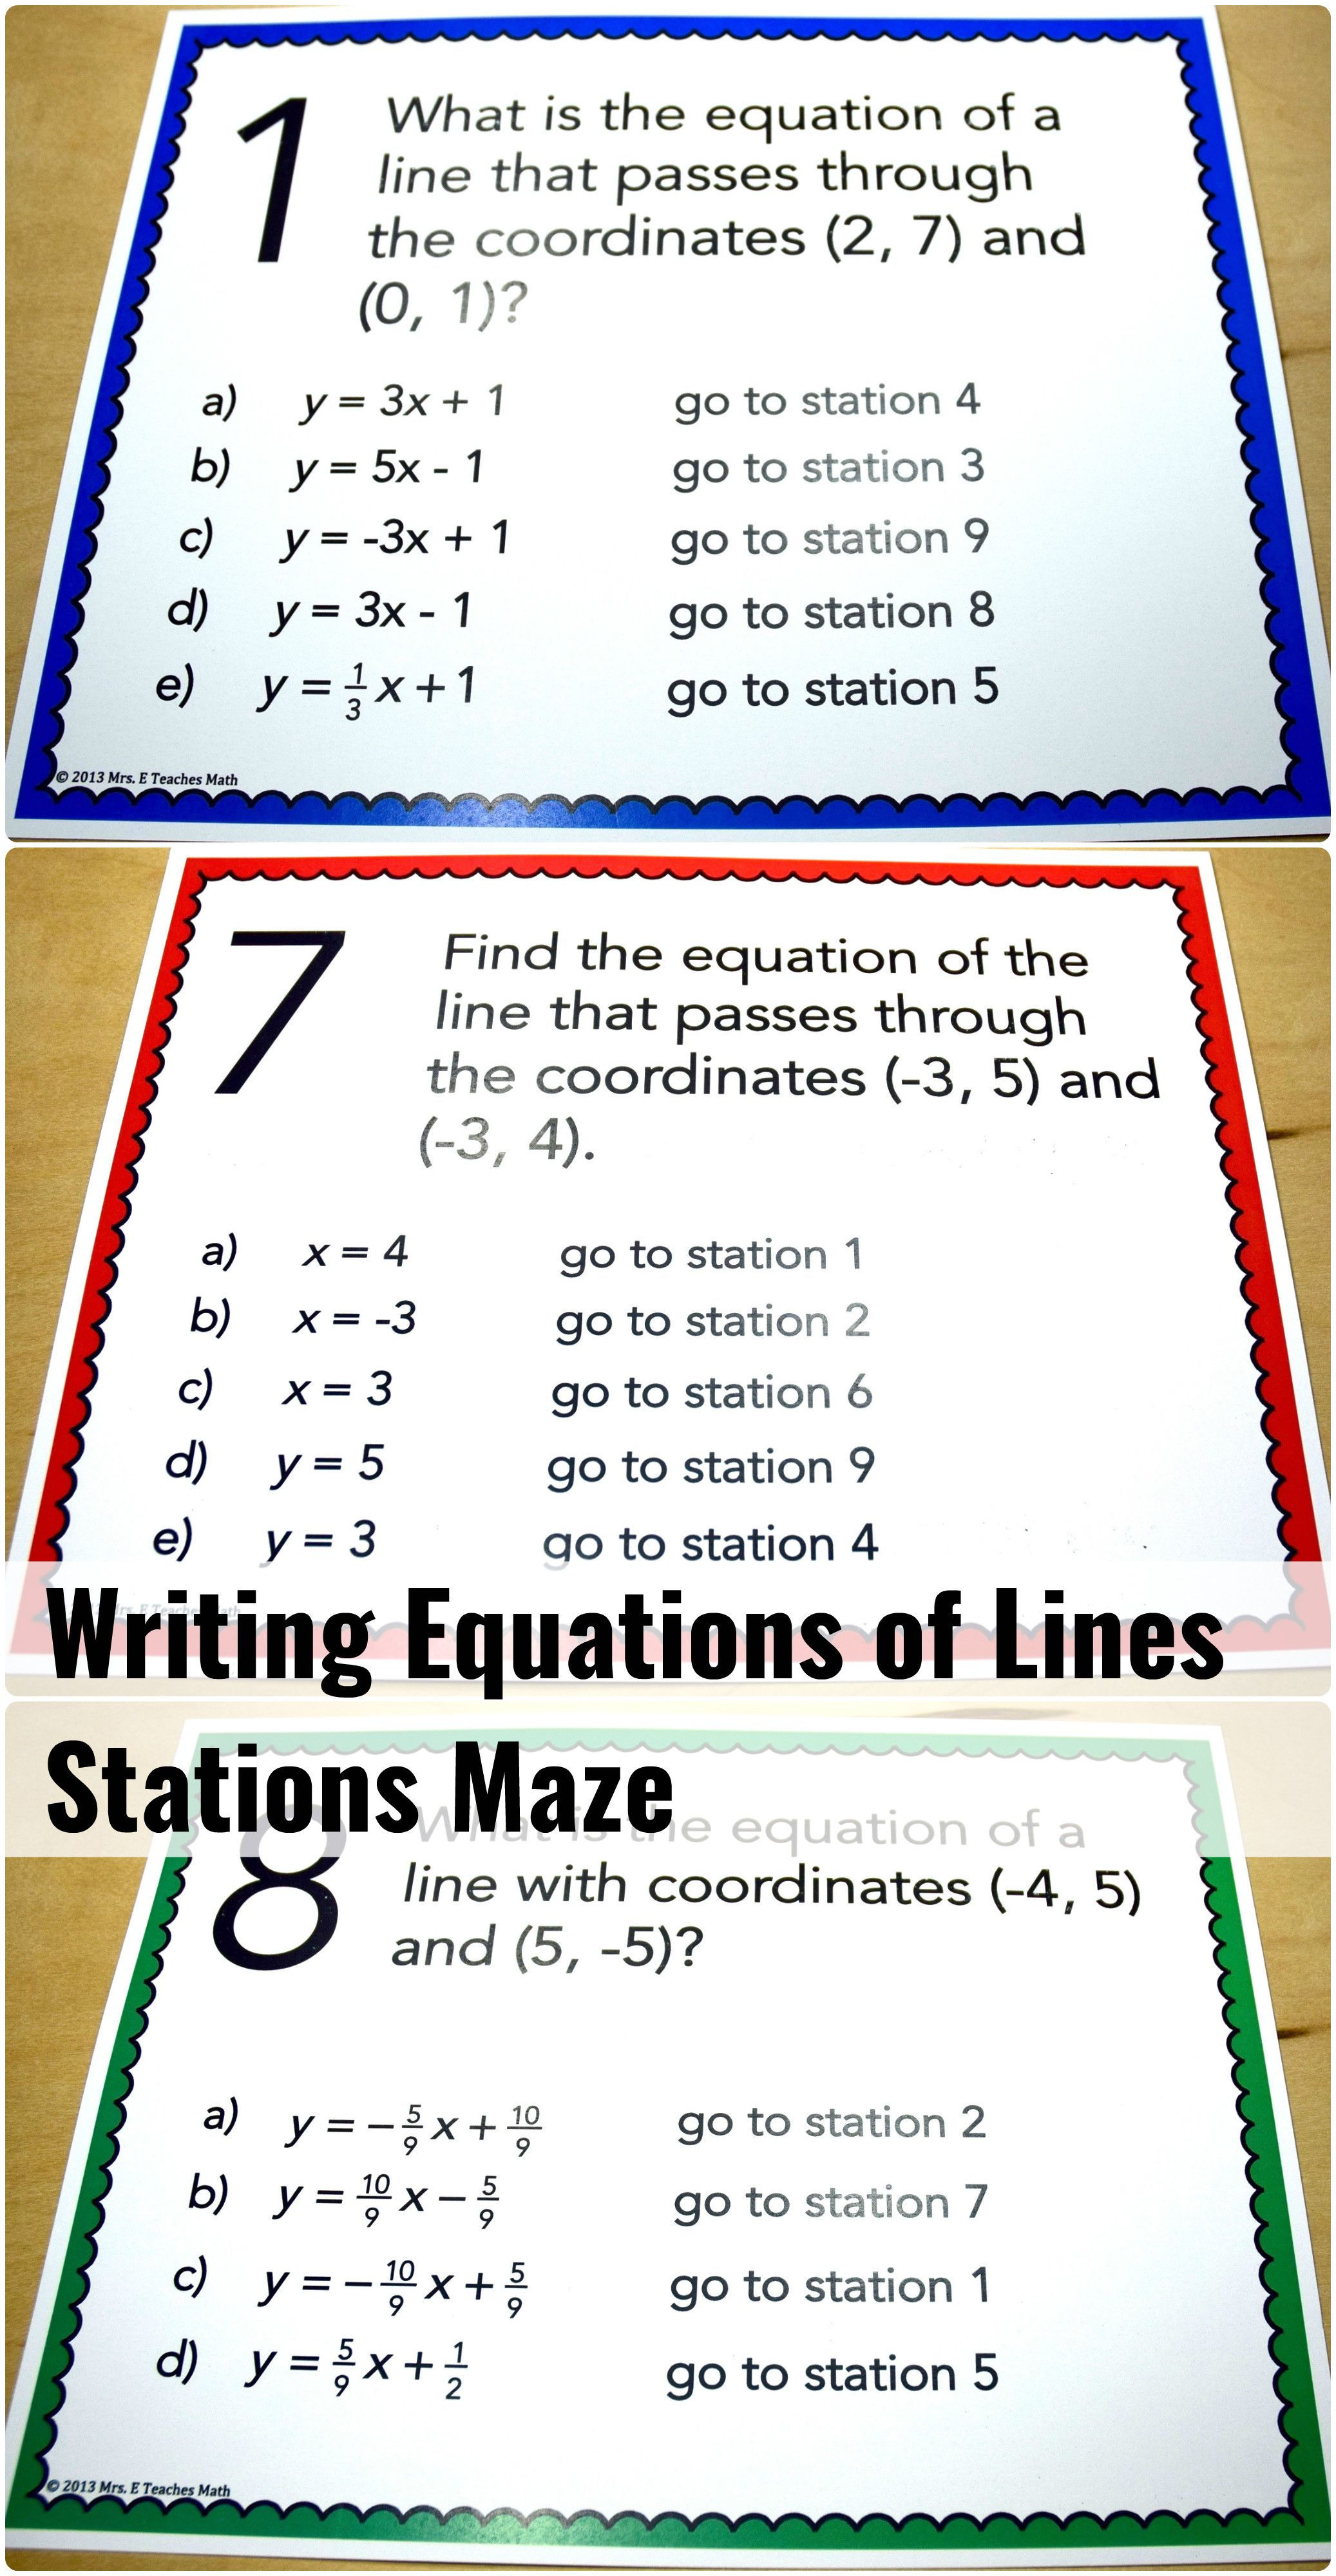 Writing Equations Of Lines Stations Maze An Engaging Activity For Algebra Students Writing Equations High School Math Education Math